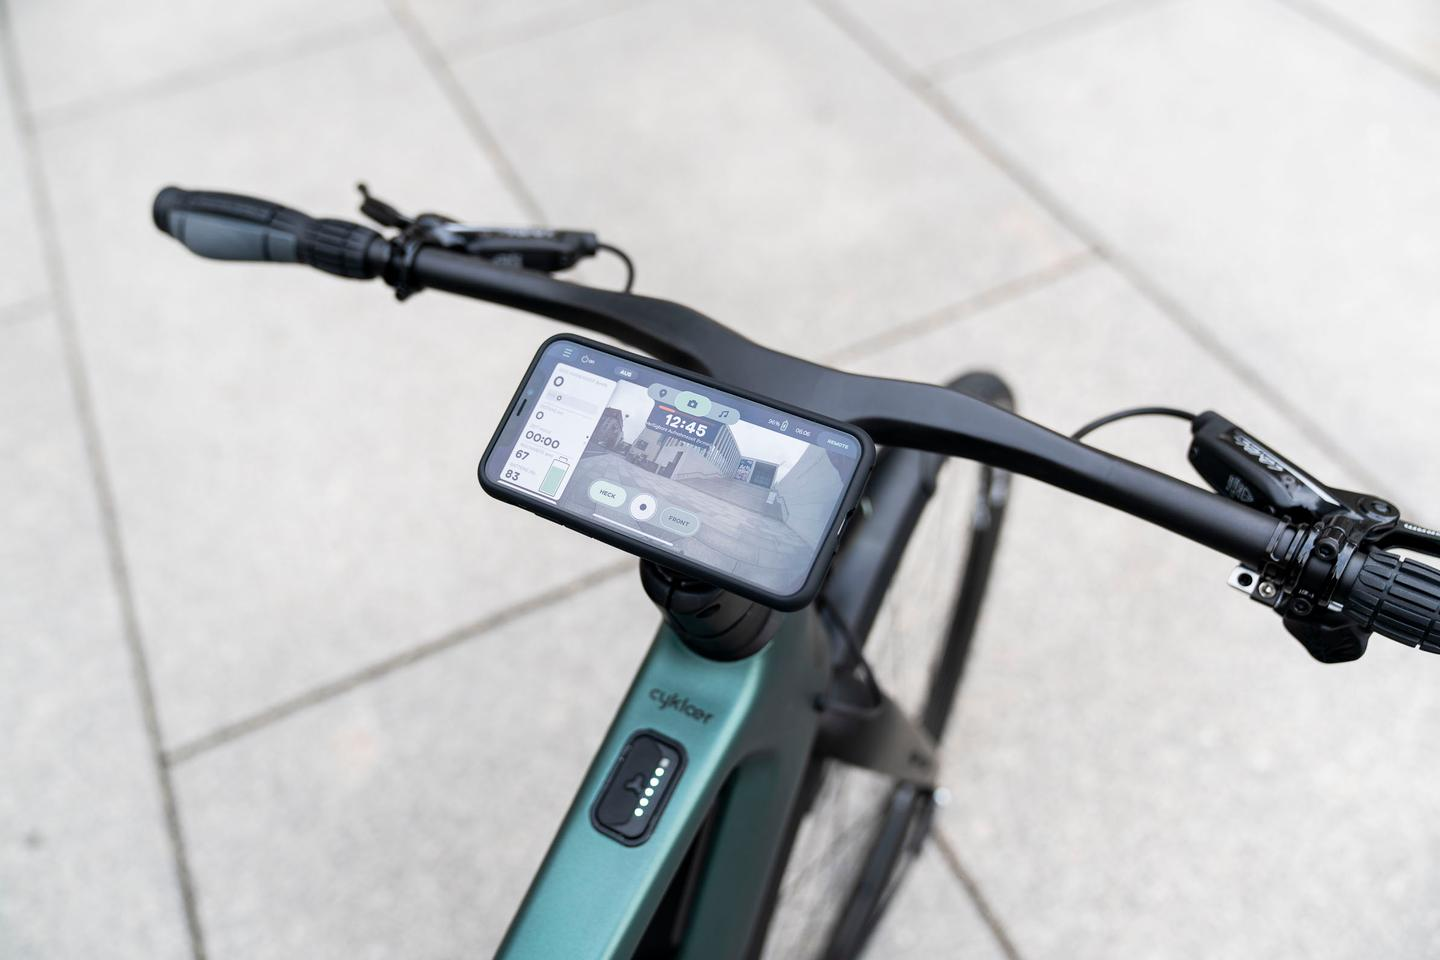 Utilizing a dedicated Porsche Digital-designed app, riders can view the rear camera's live video on their handlebar-mounted smartphone